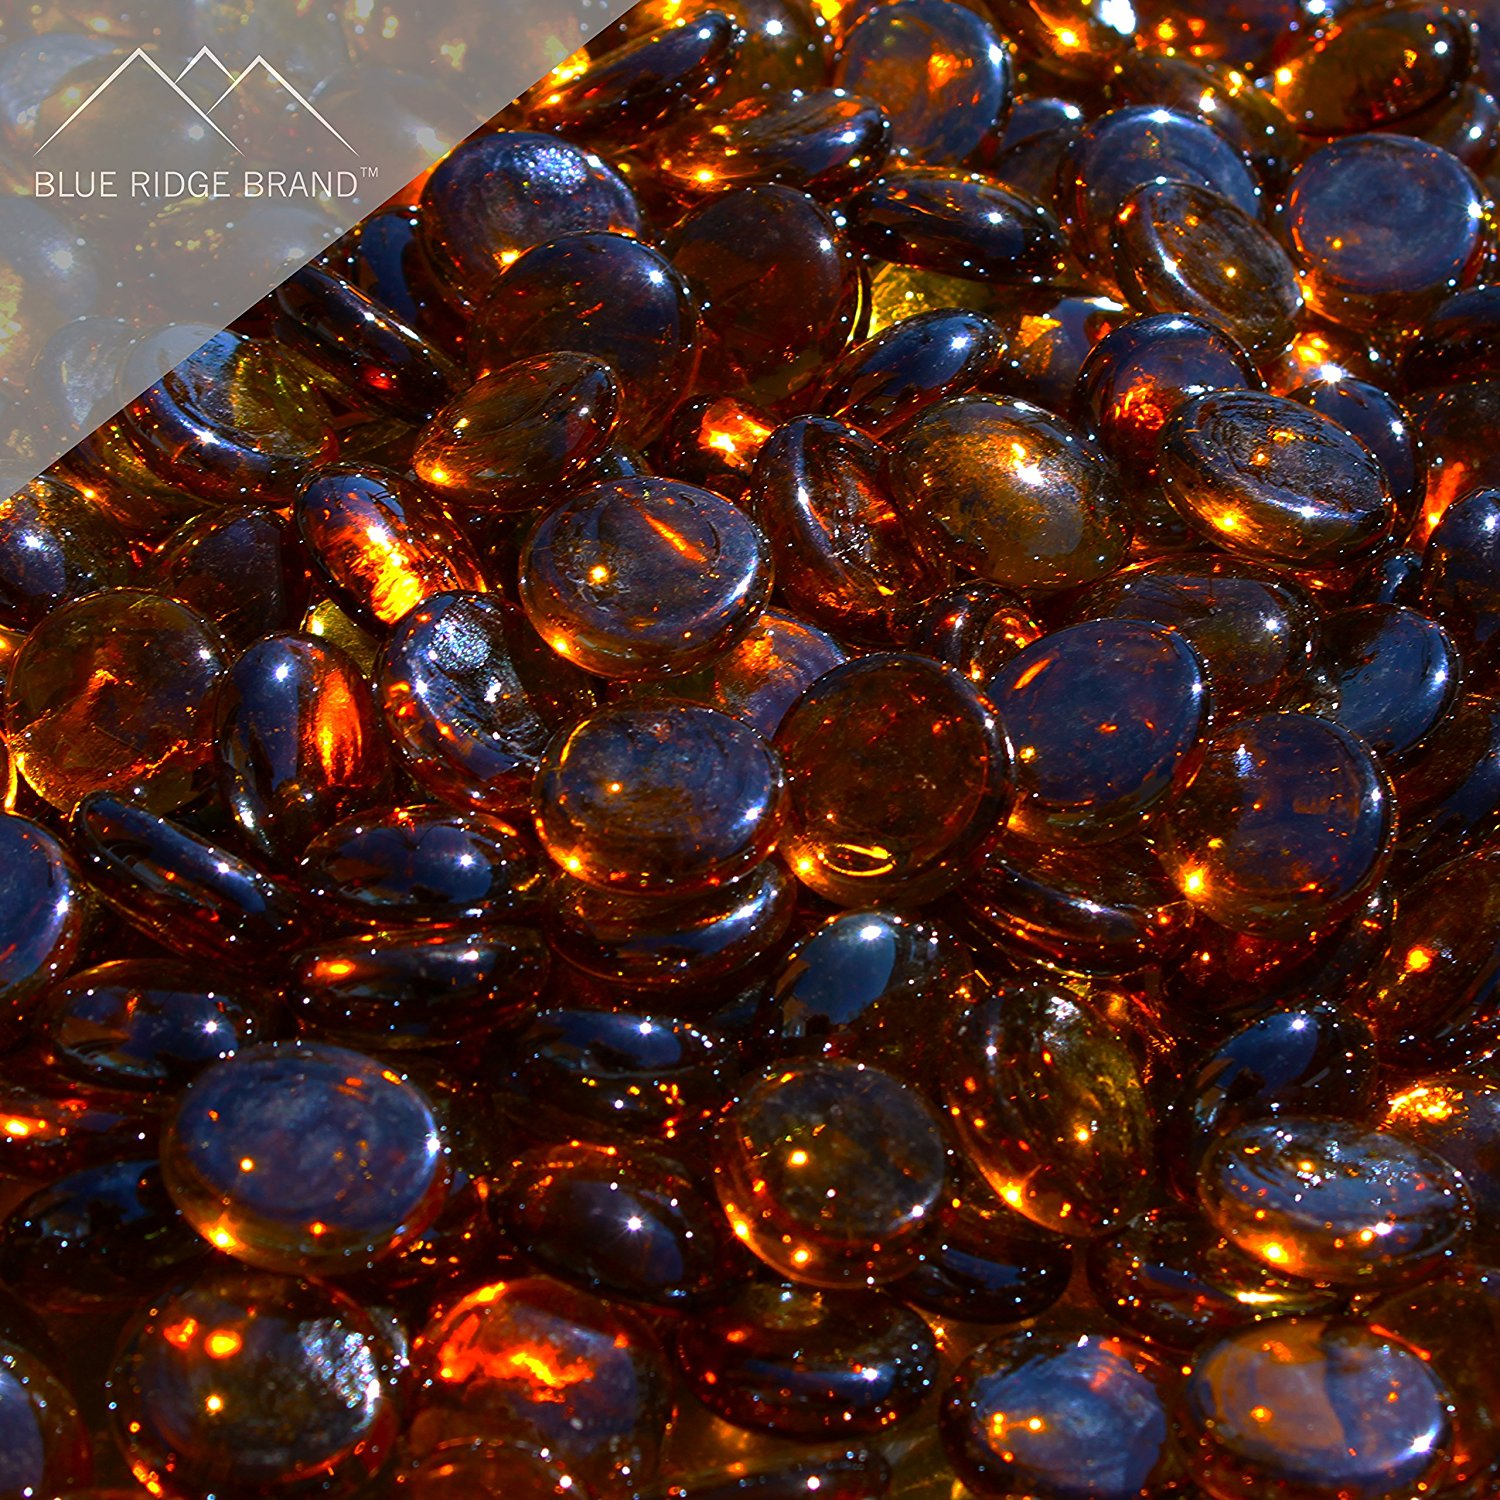 """Fire Pit Glass - Dark Amber Reflective Fire Glass Beads 3/4"""" - Brown Reflective Fire Pit Glass Rocks - Blue Ridge Brand™ Reflective Glass Beads for Fireplace and Landscaping 3, 5, 10, 20, 50 Pounds"""